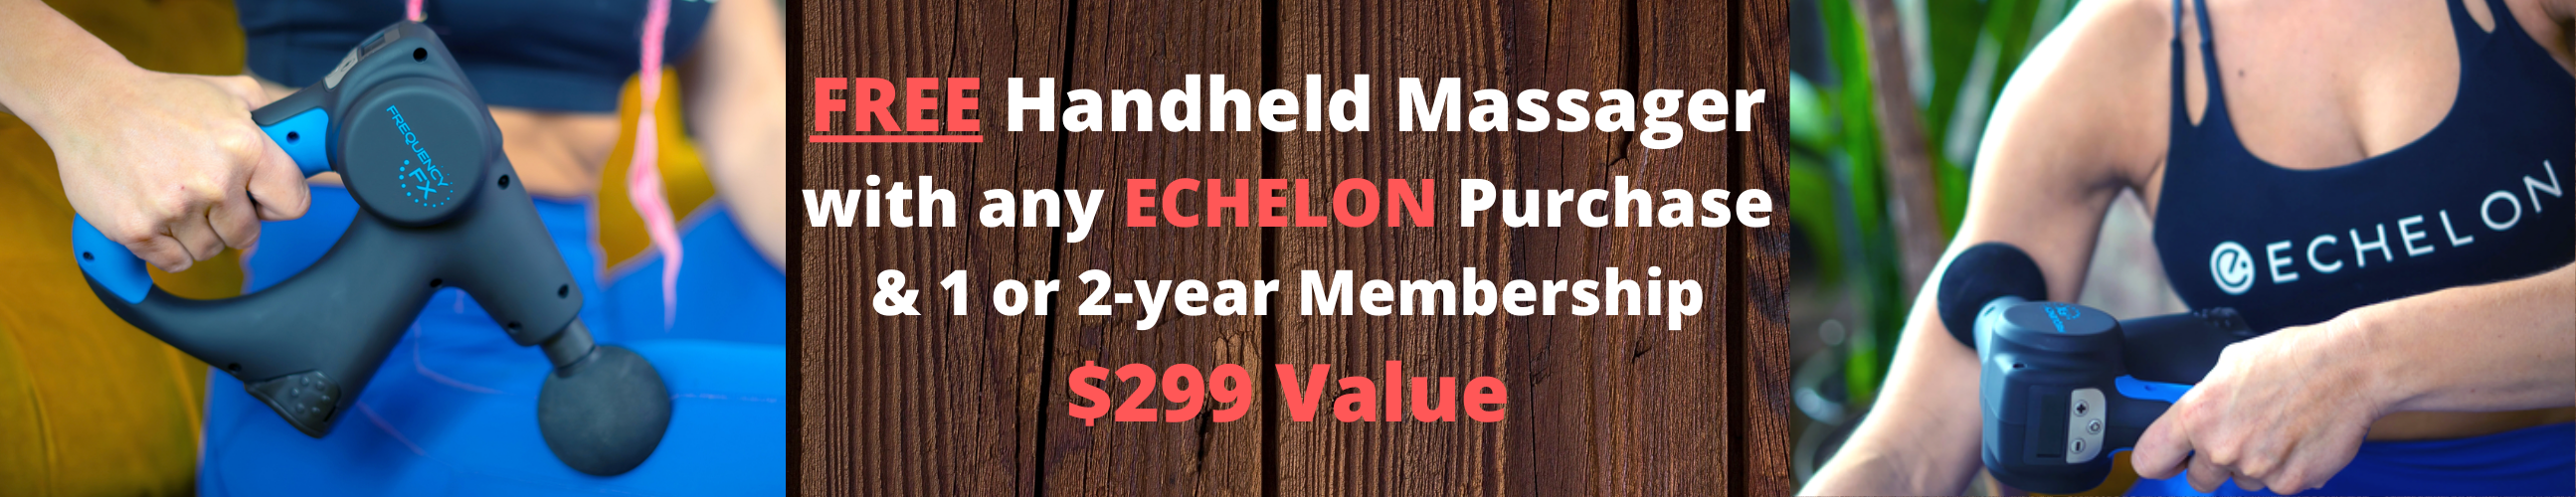 Free Handheld Frequency FX Massager with Purchase of any Echelon and 1 or 2-Year Membership